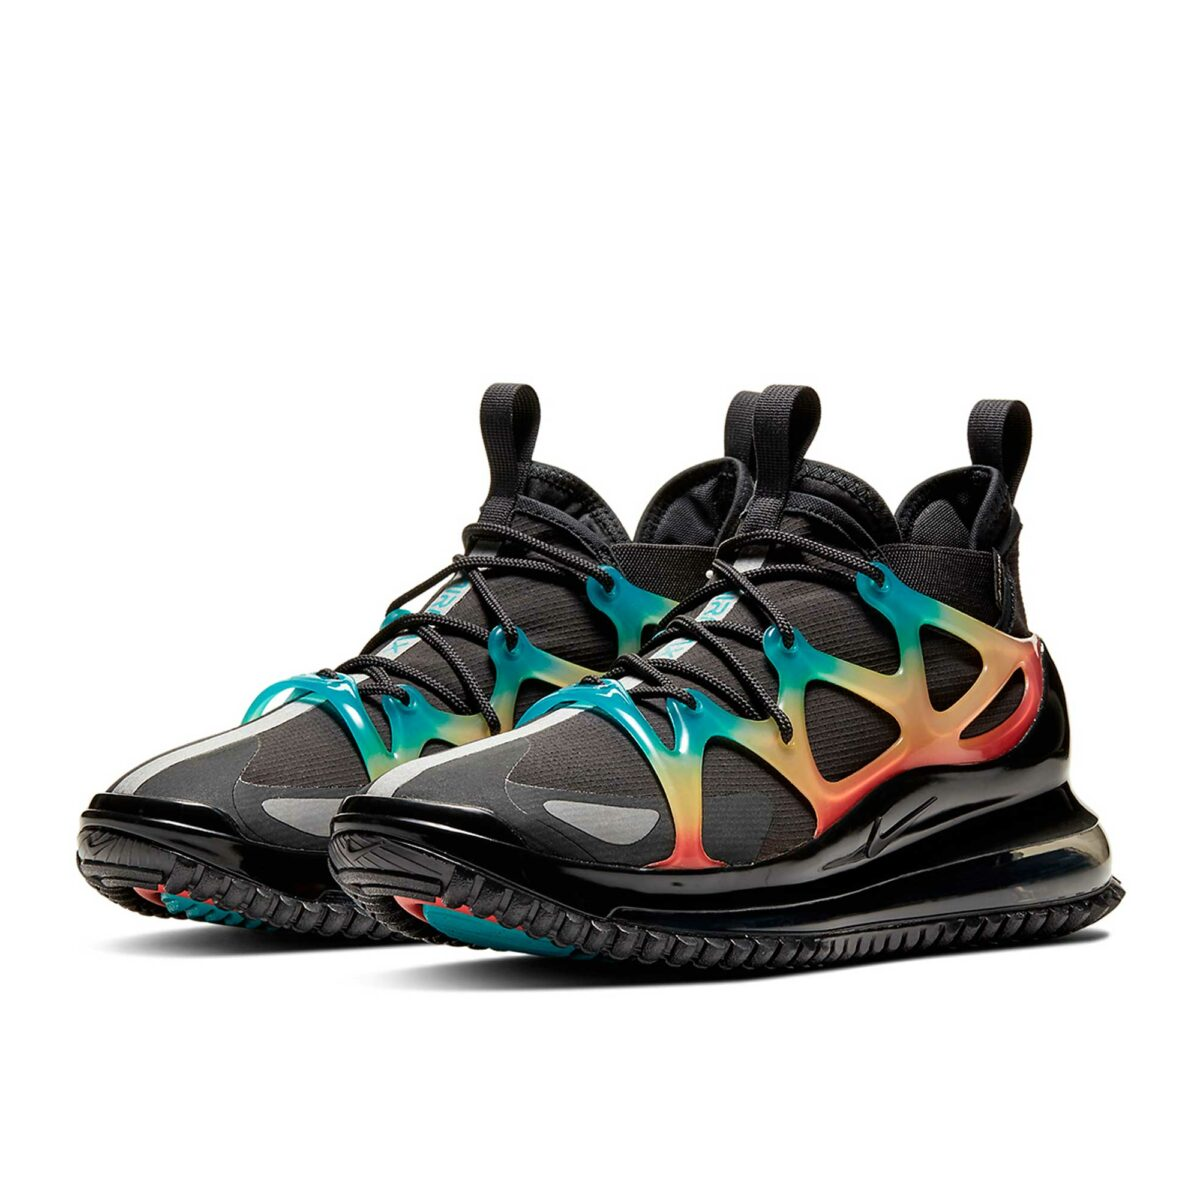 nike air max 720 horizon black multi BQ5808_003 купить